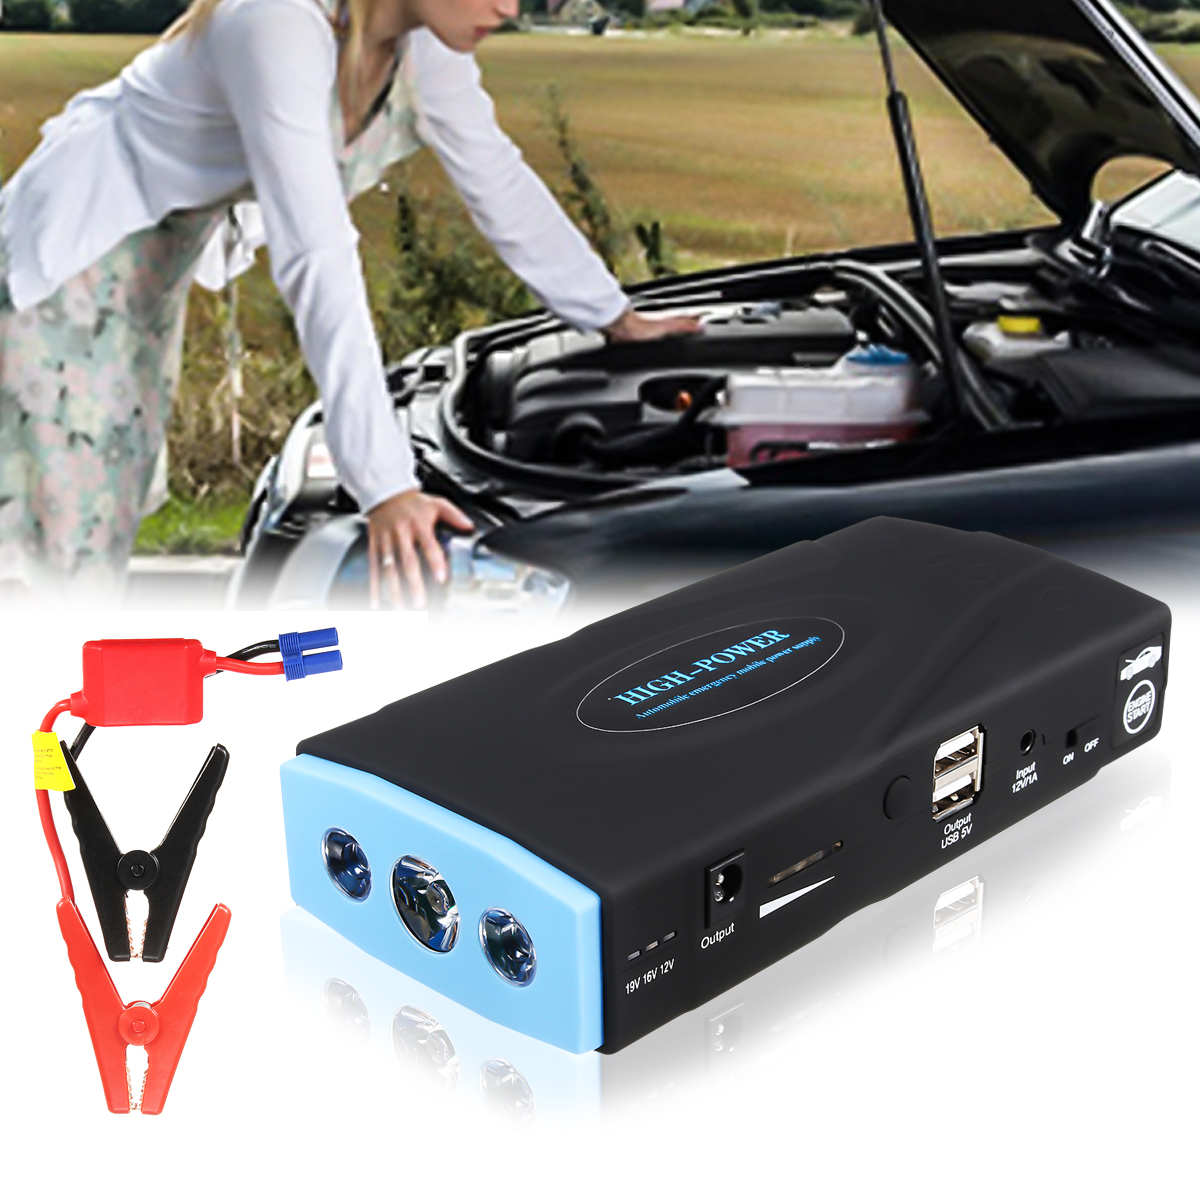 12000mAh 12V Car Portable Jump Starter Emergency Power Supply Power Bank Battery Charger